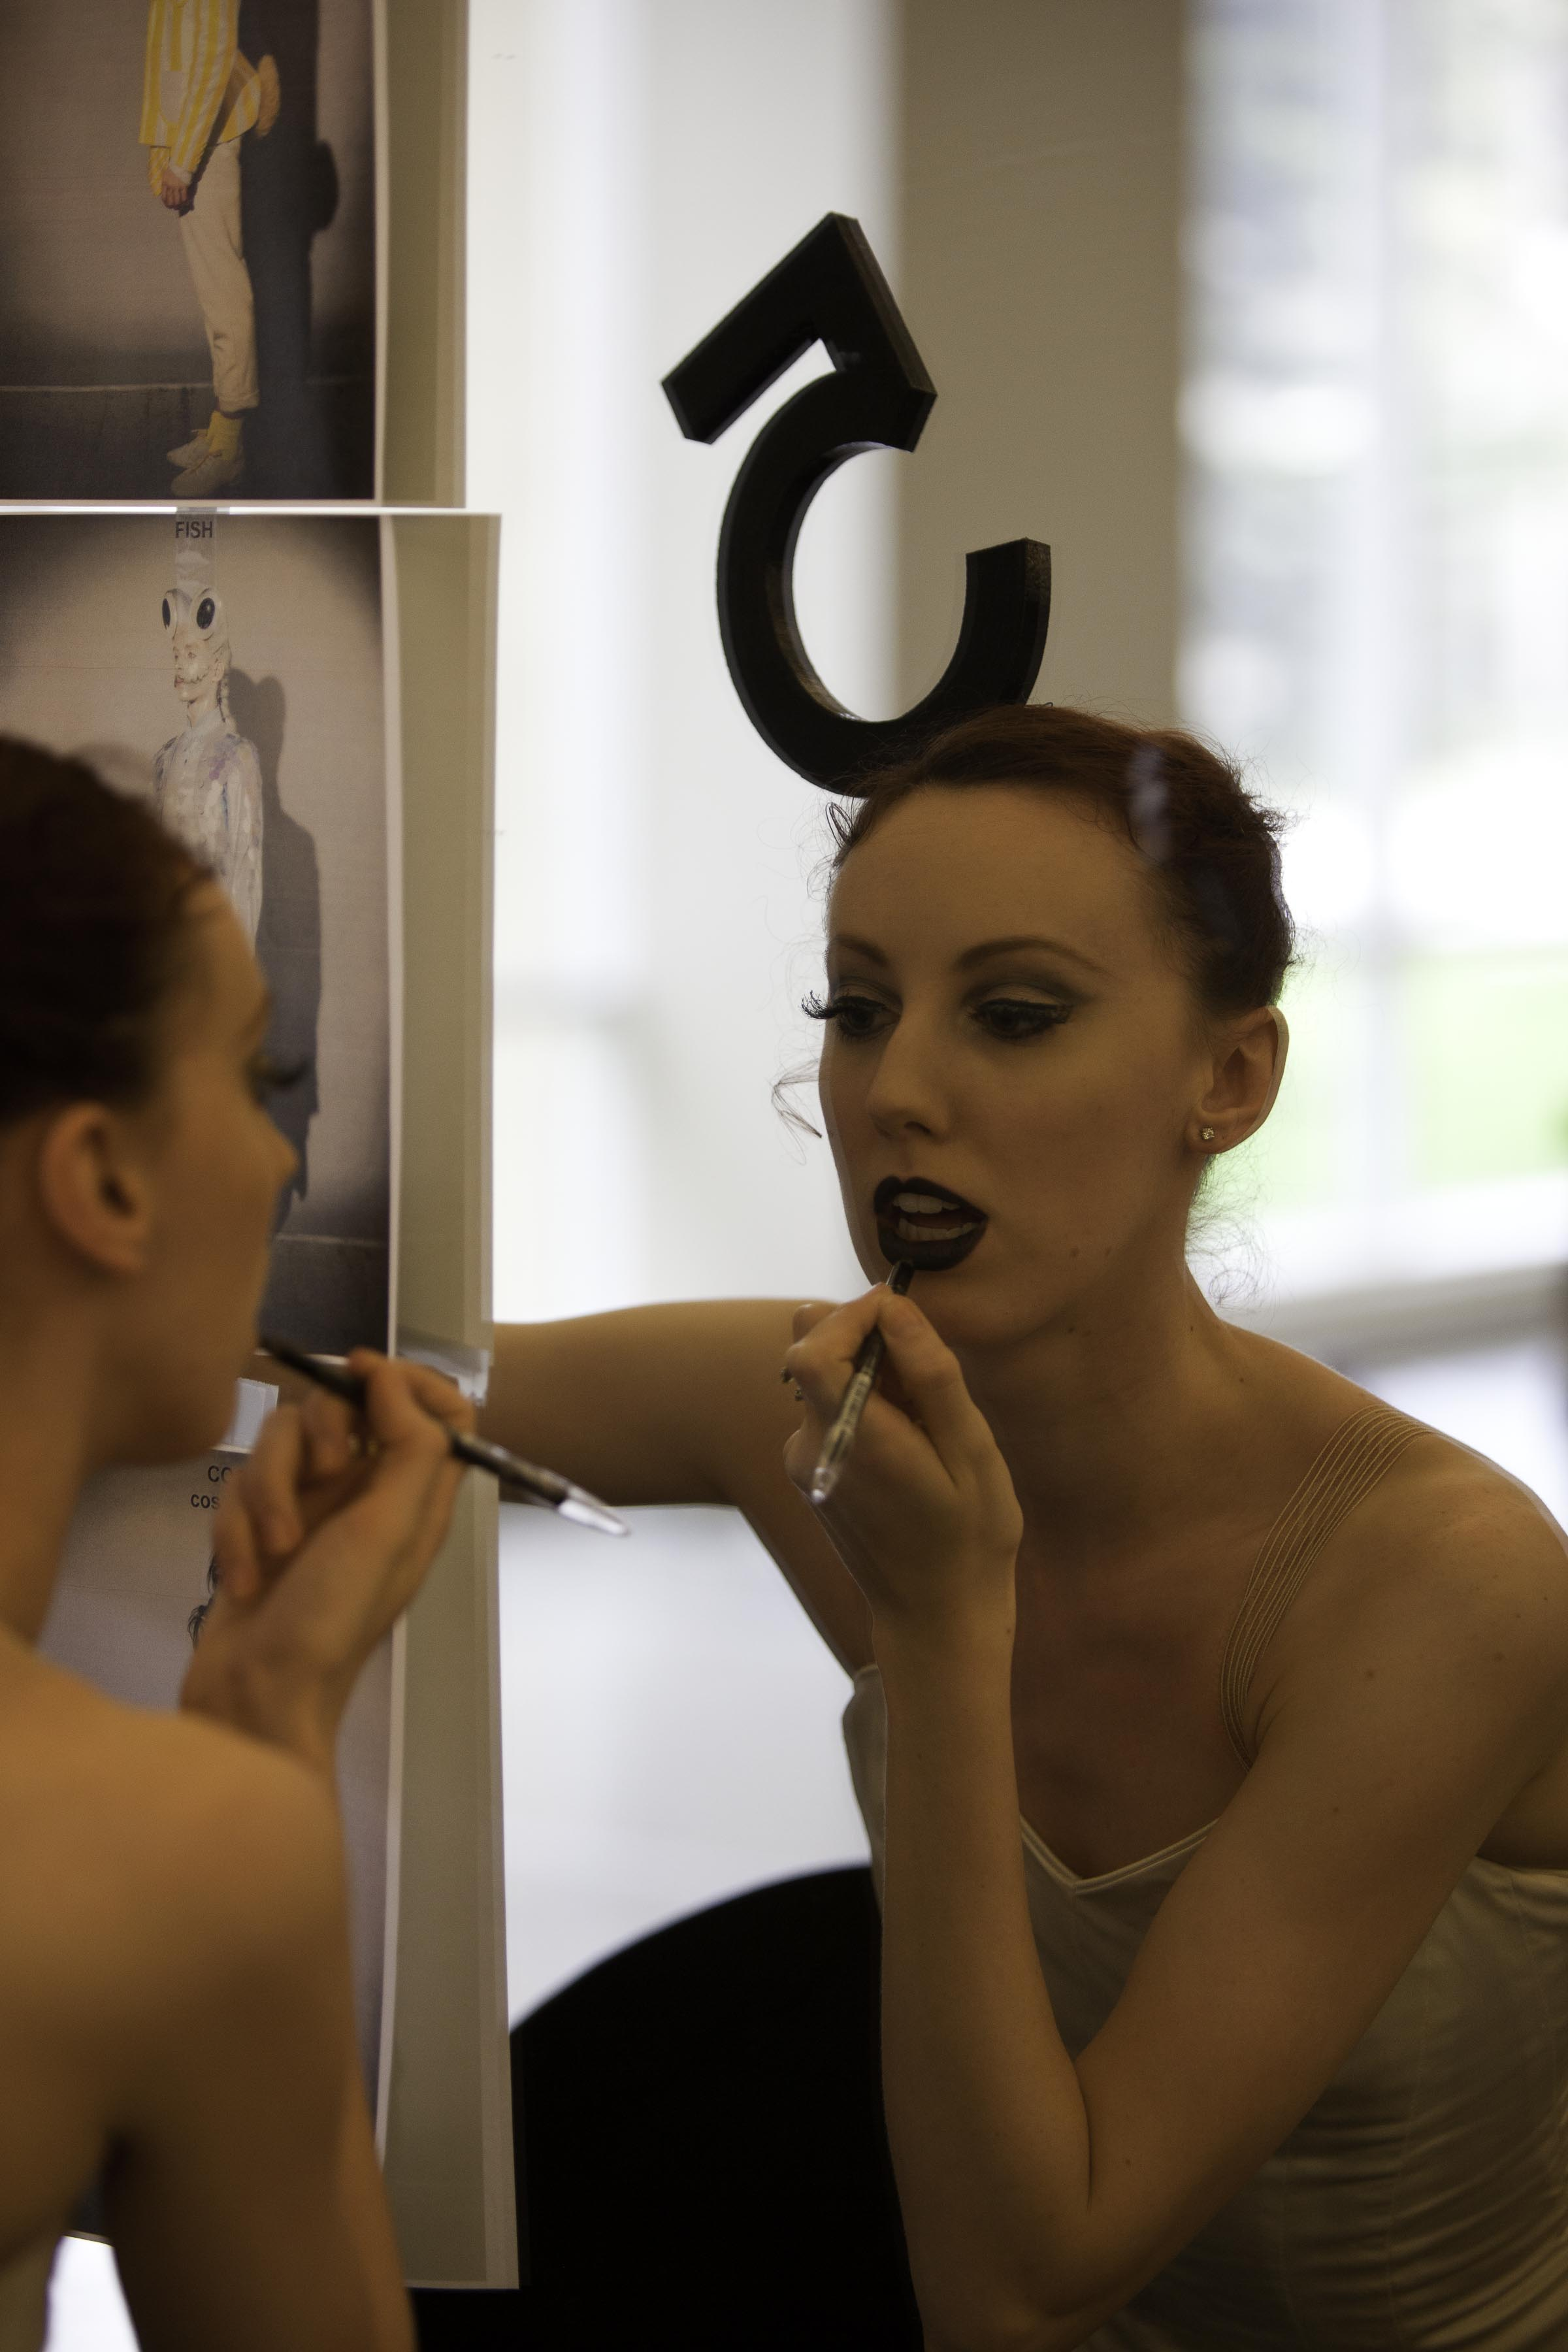 dancer puts on her make-up in front of the mirror